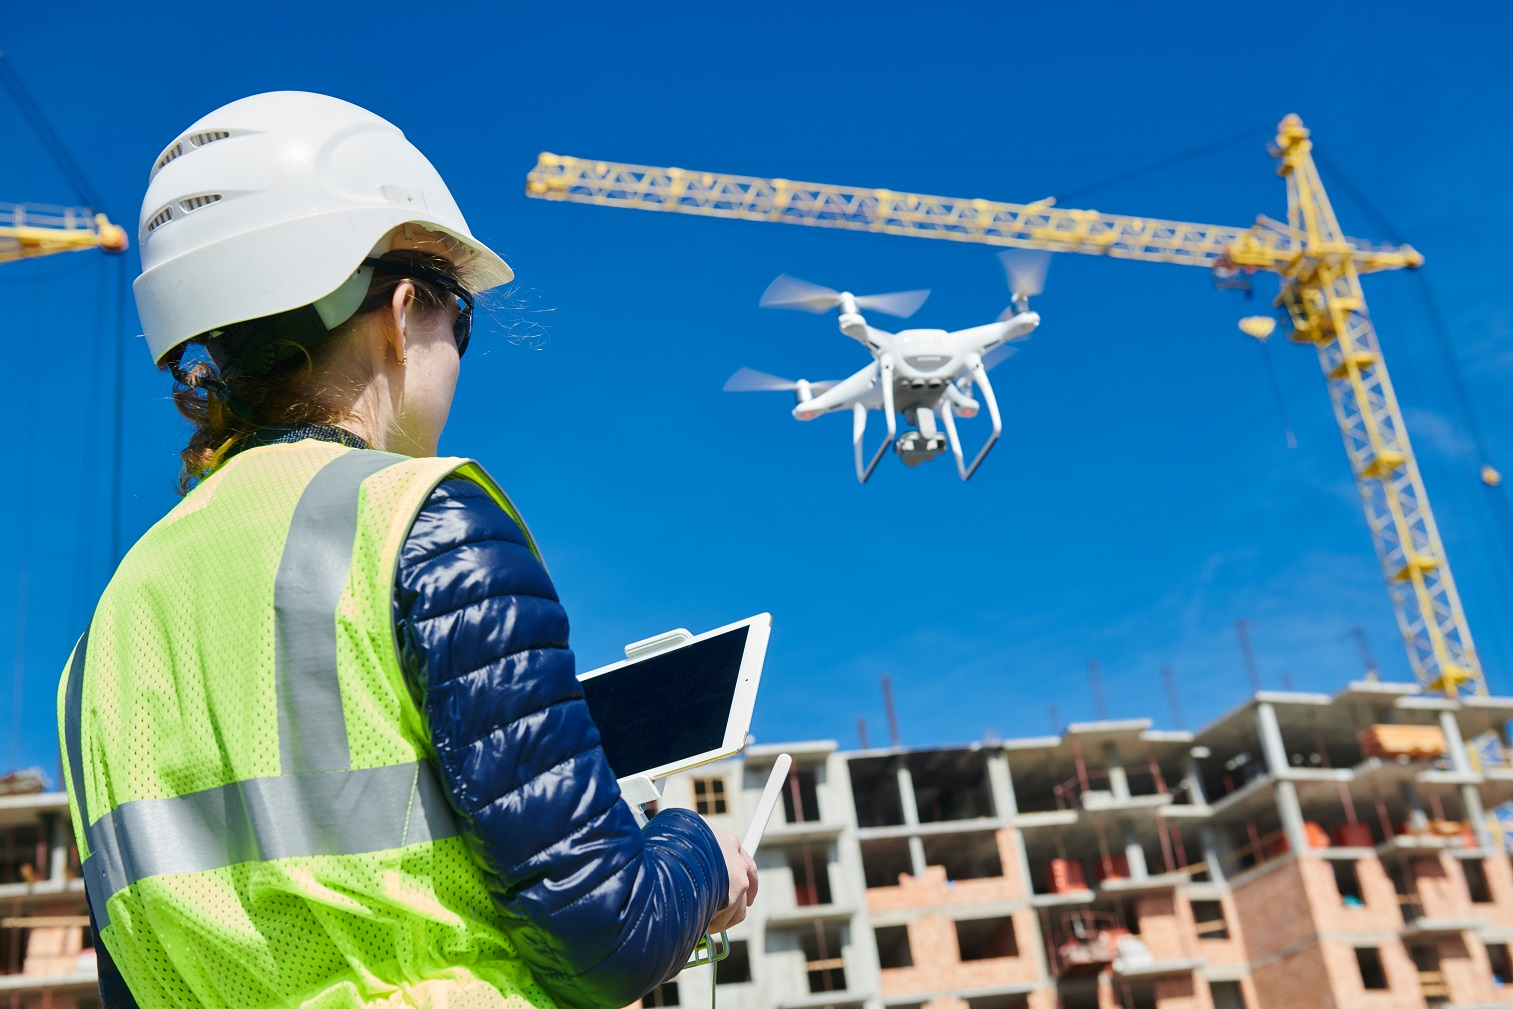 Adco-How-Roofers-Can-Use-Drones.